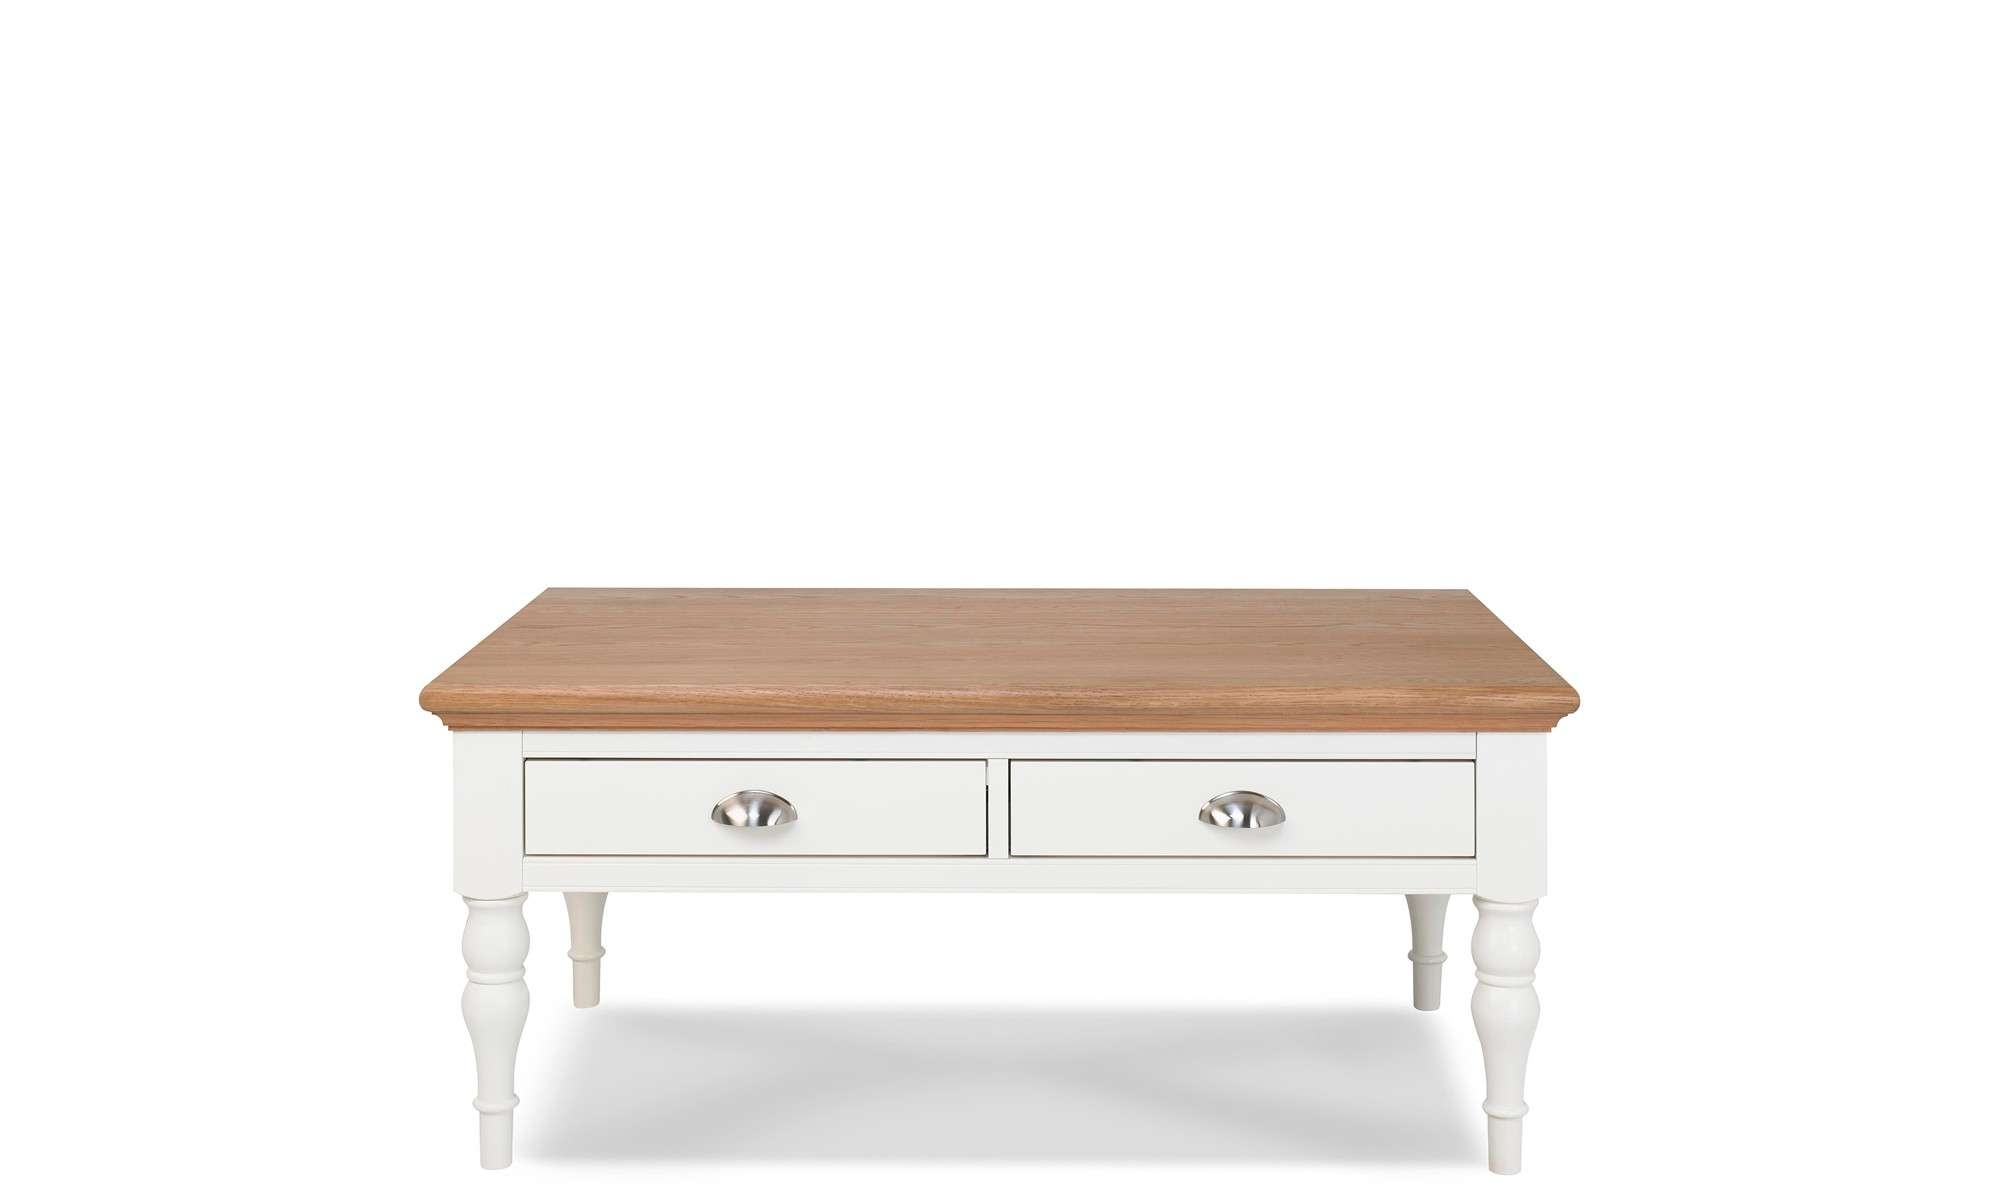 Most Recent Cream And Oak Coffee Tables Intended For Coffee Tables – Wooden And Glass Coffee Tables – Fishpools (View 17 of 20)